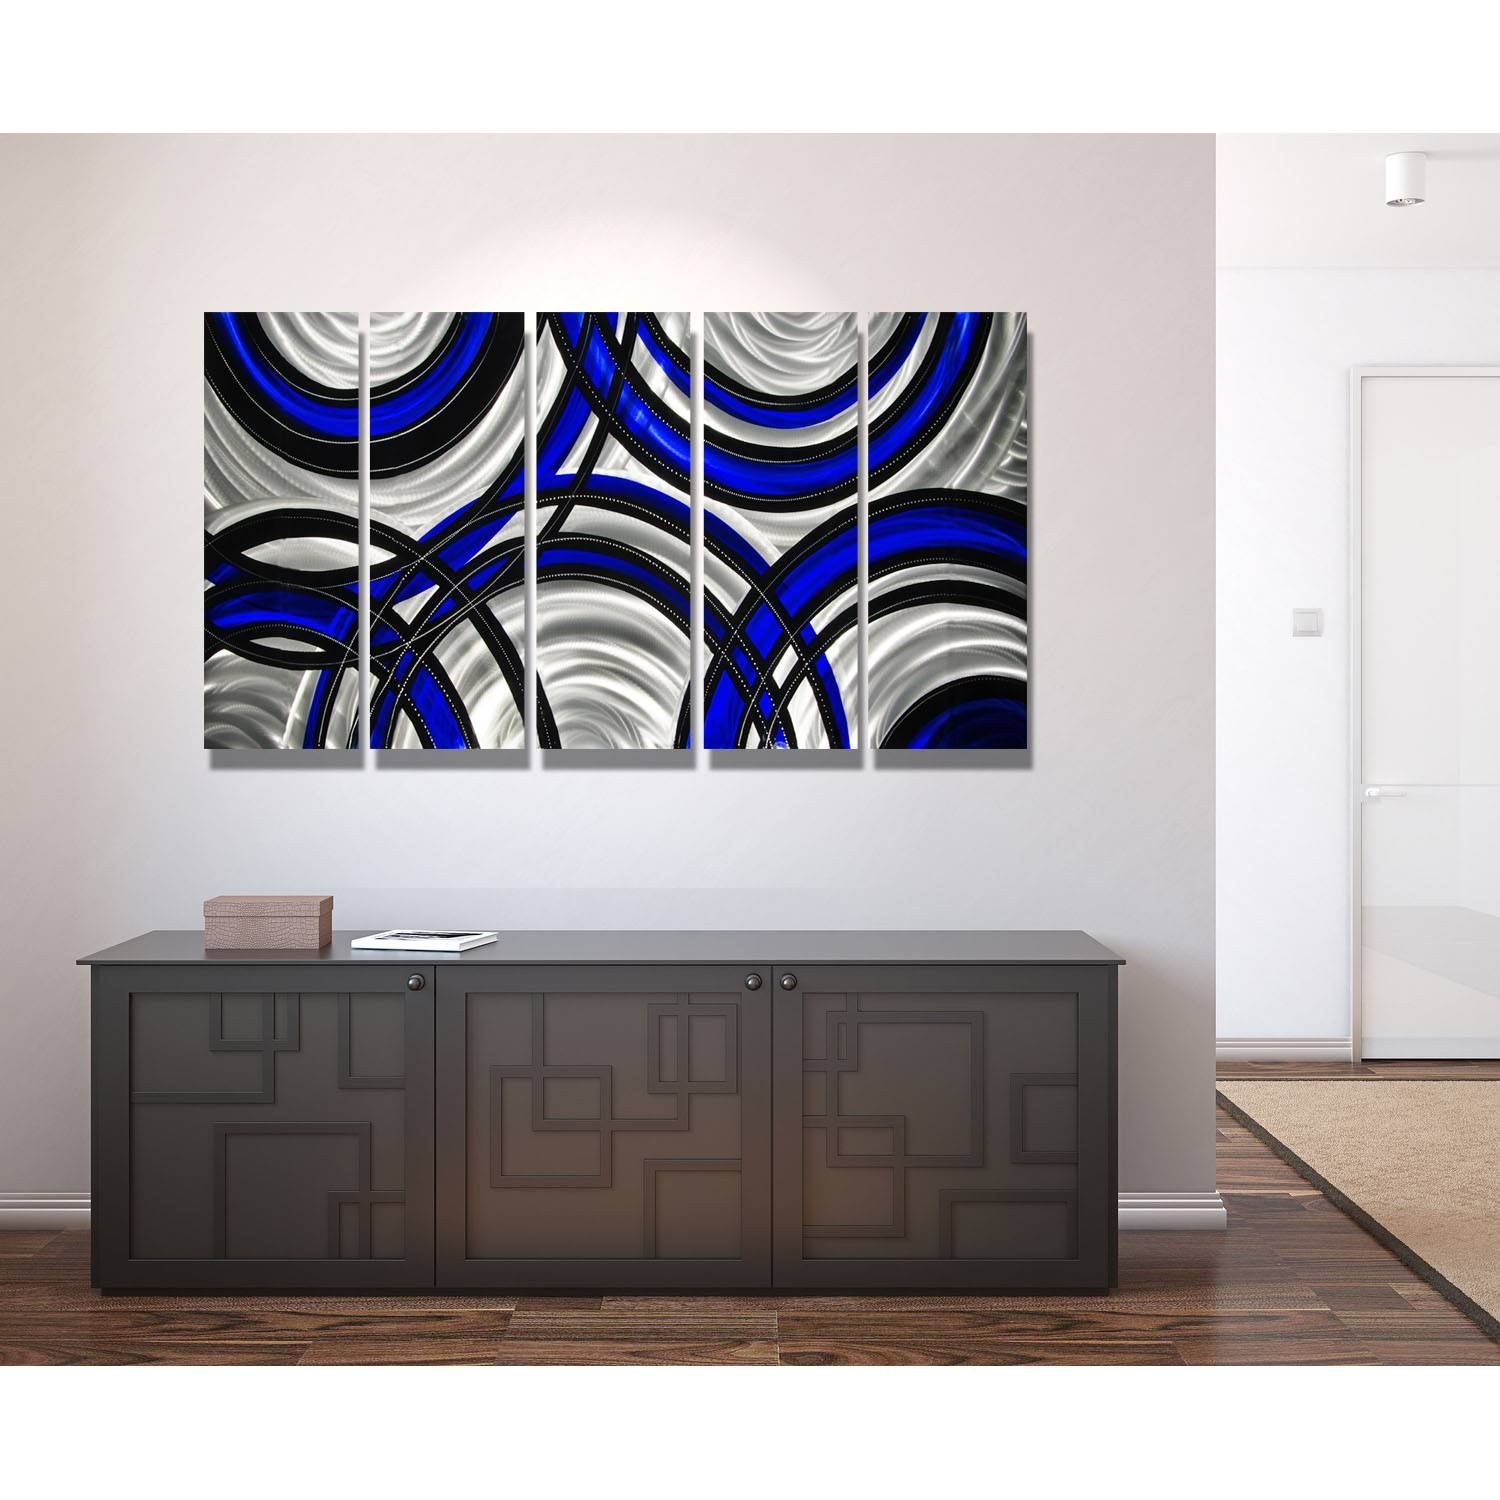 Blue Synergy – Blue, Black And Silver Metal Wall Art – 5 Panel With Regard To Most Up To Date Blue And Silver Wall Art (View 11 of 20)